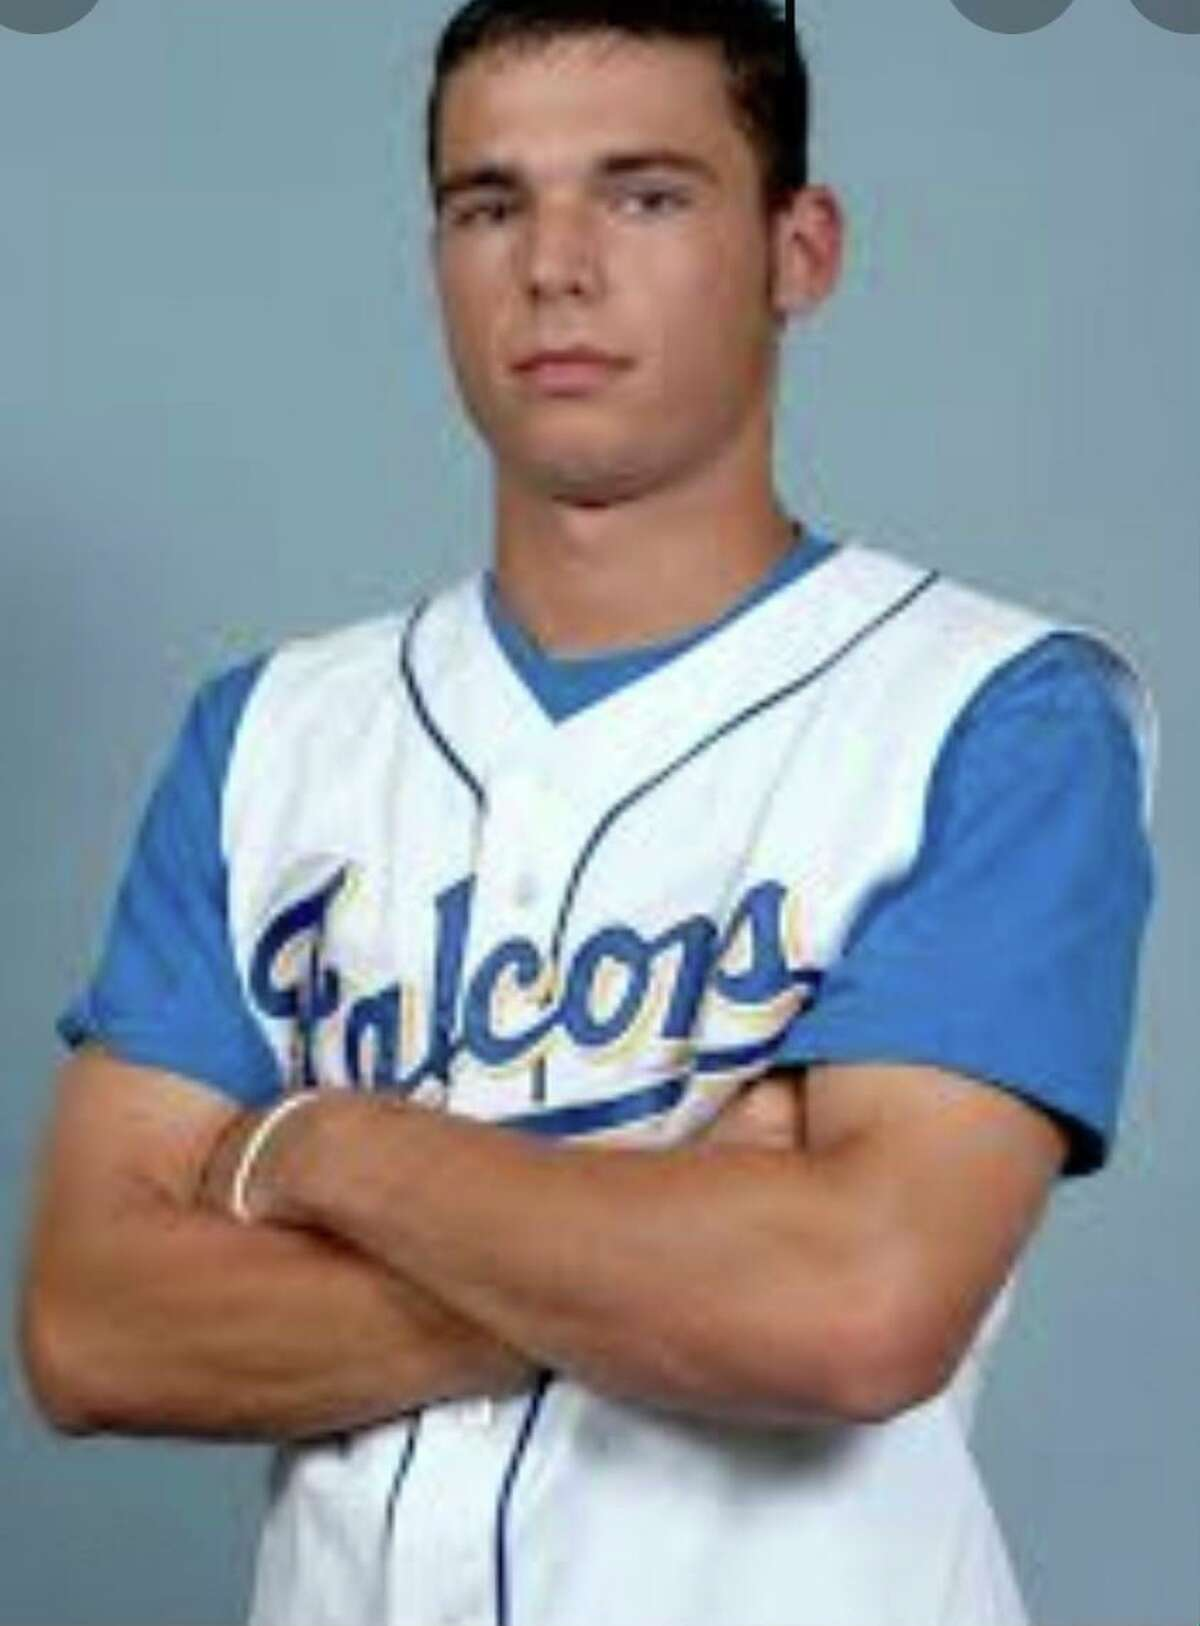 Giants shortstop Brandon Crawford was a standout at Foothill High School in Pleasanton before playing in college at UCLA.